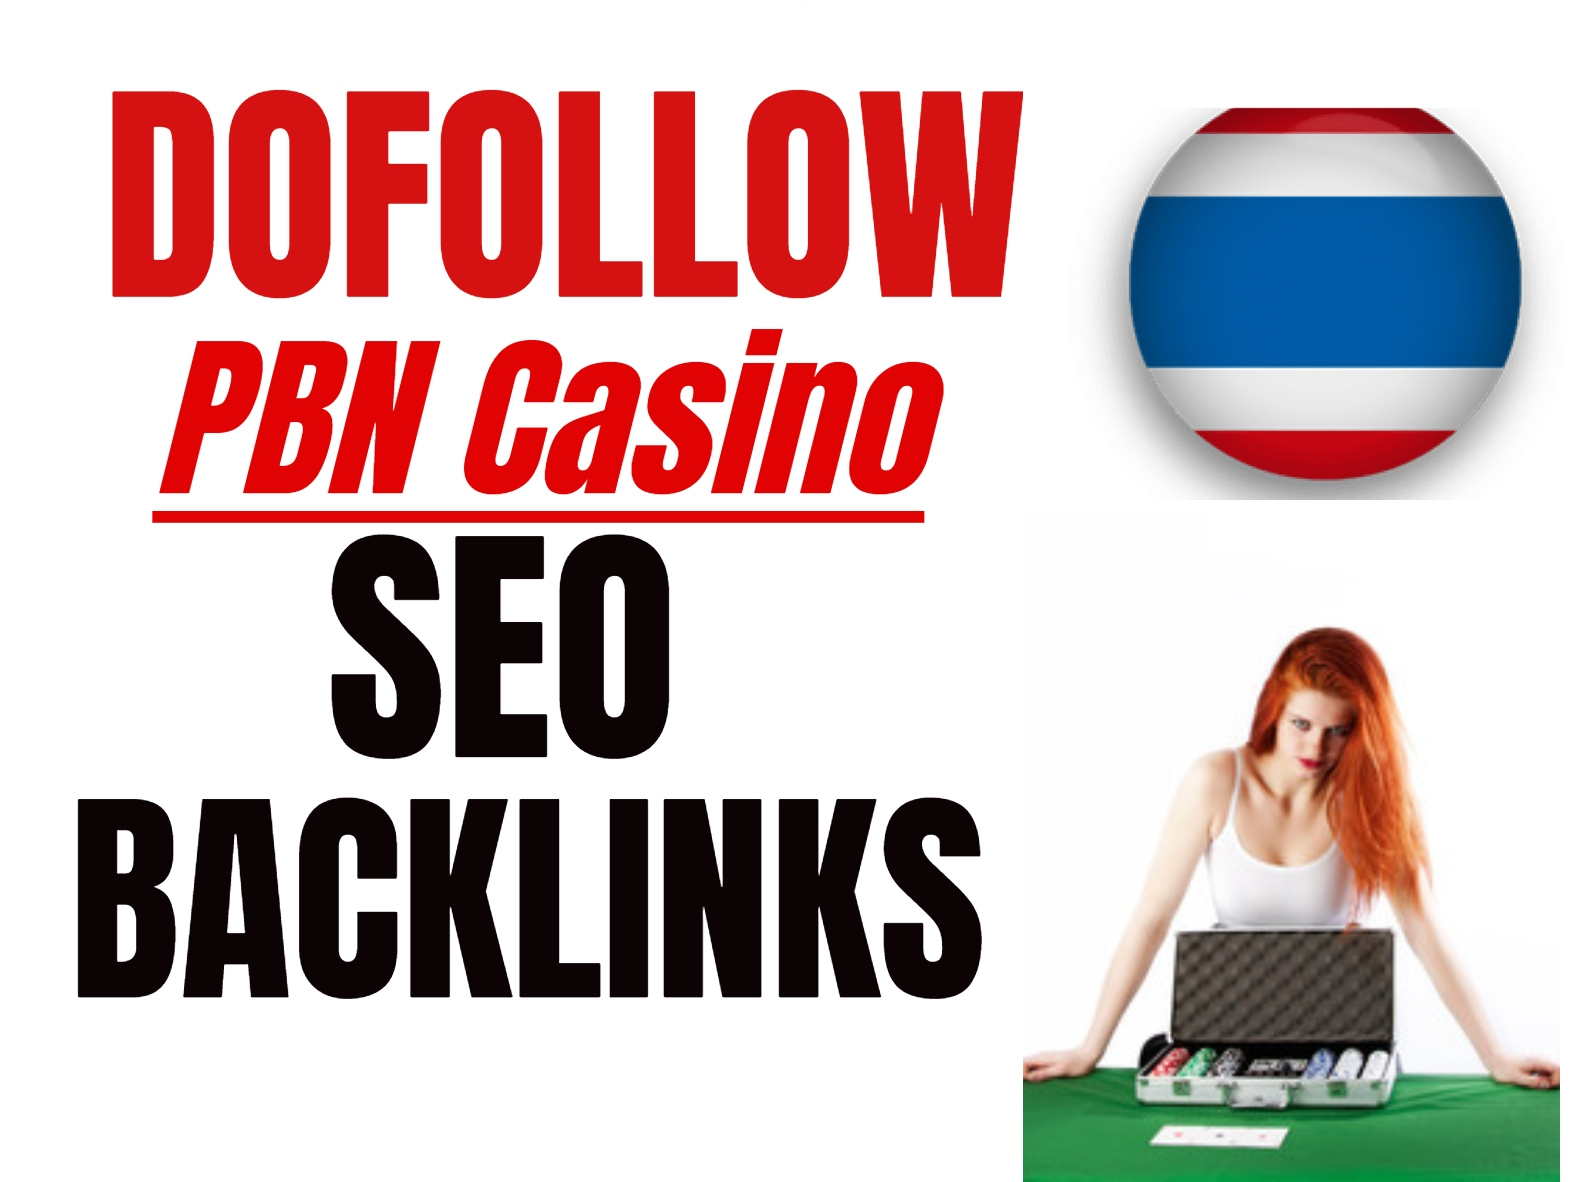 Thiland,  cambodia Casino poker gambling PBN 1000 SEO Backlinks keywords ranking